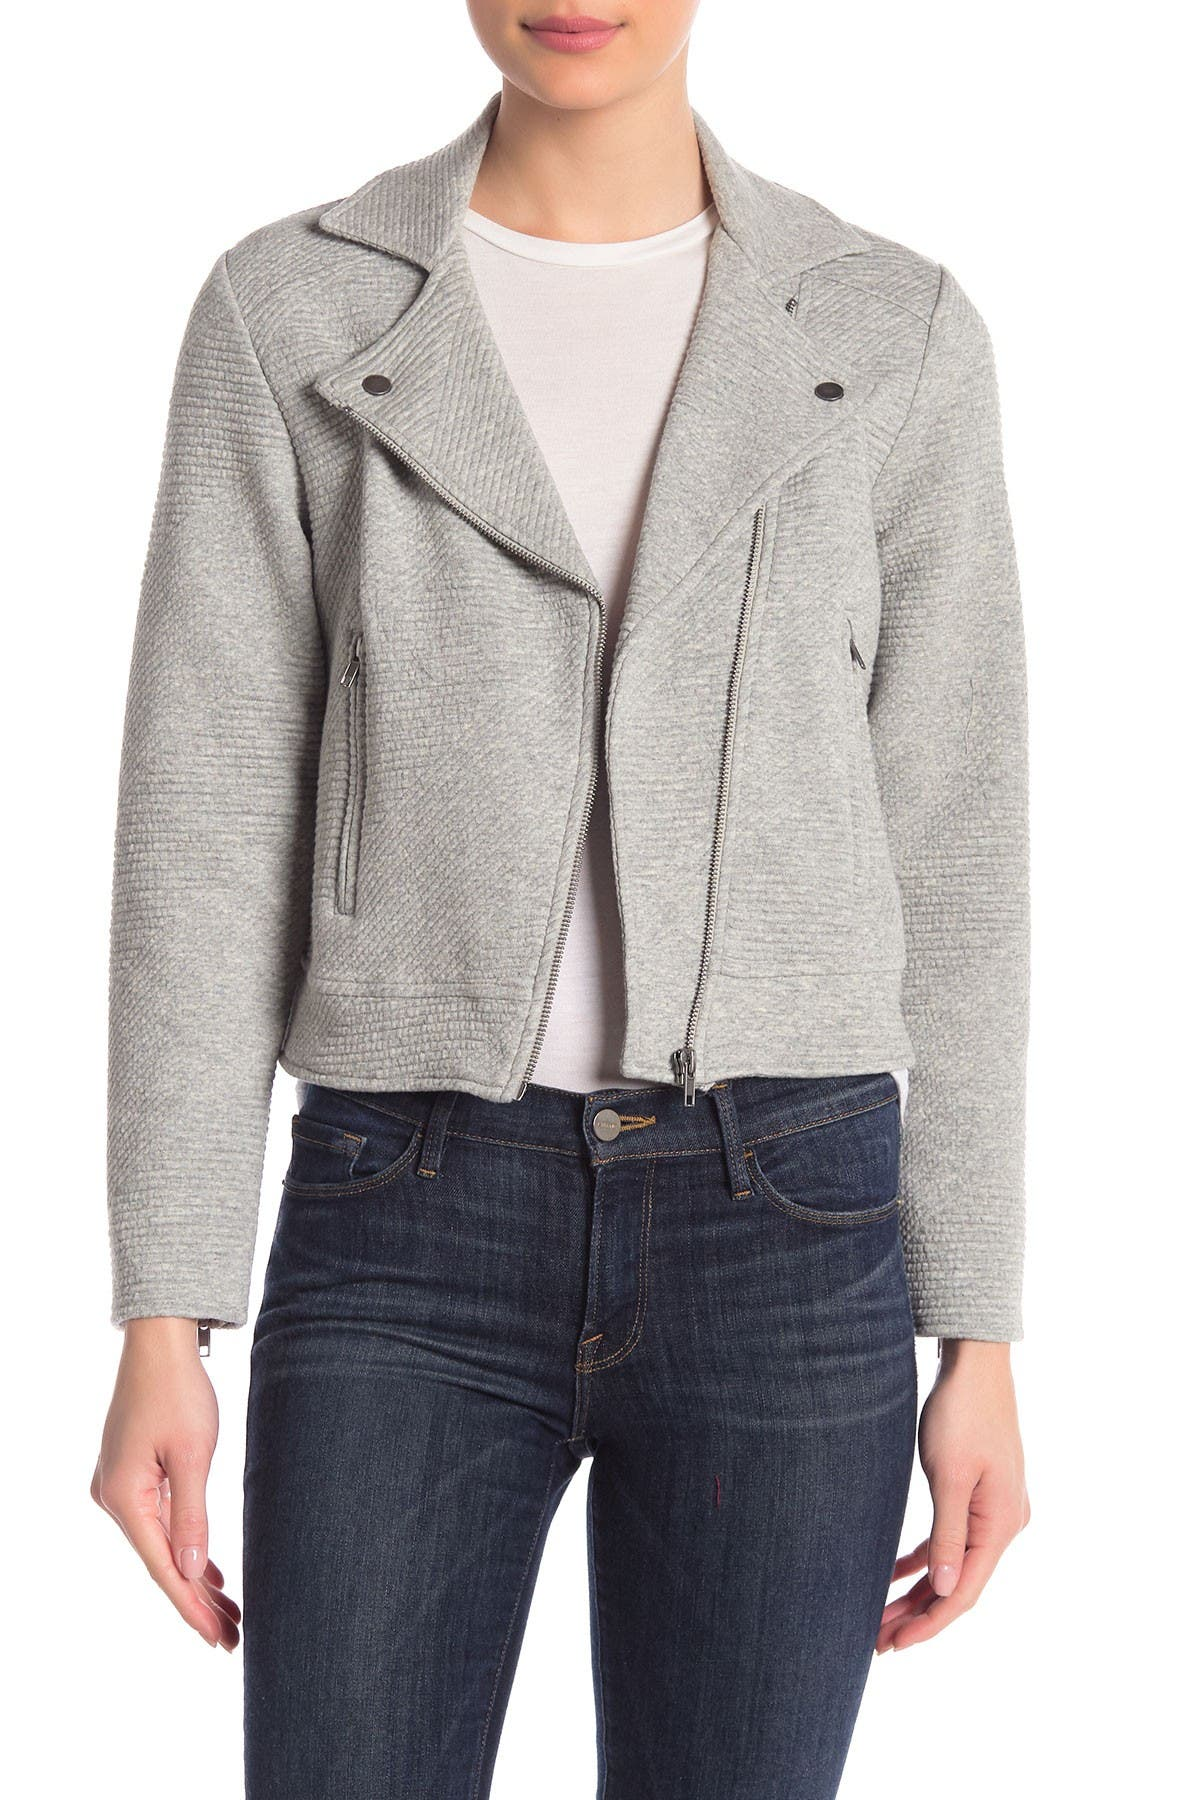 Image of: Cupcakes And Cashmere Wesley Jacket Nordstrom Rack